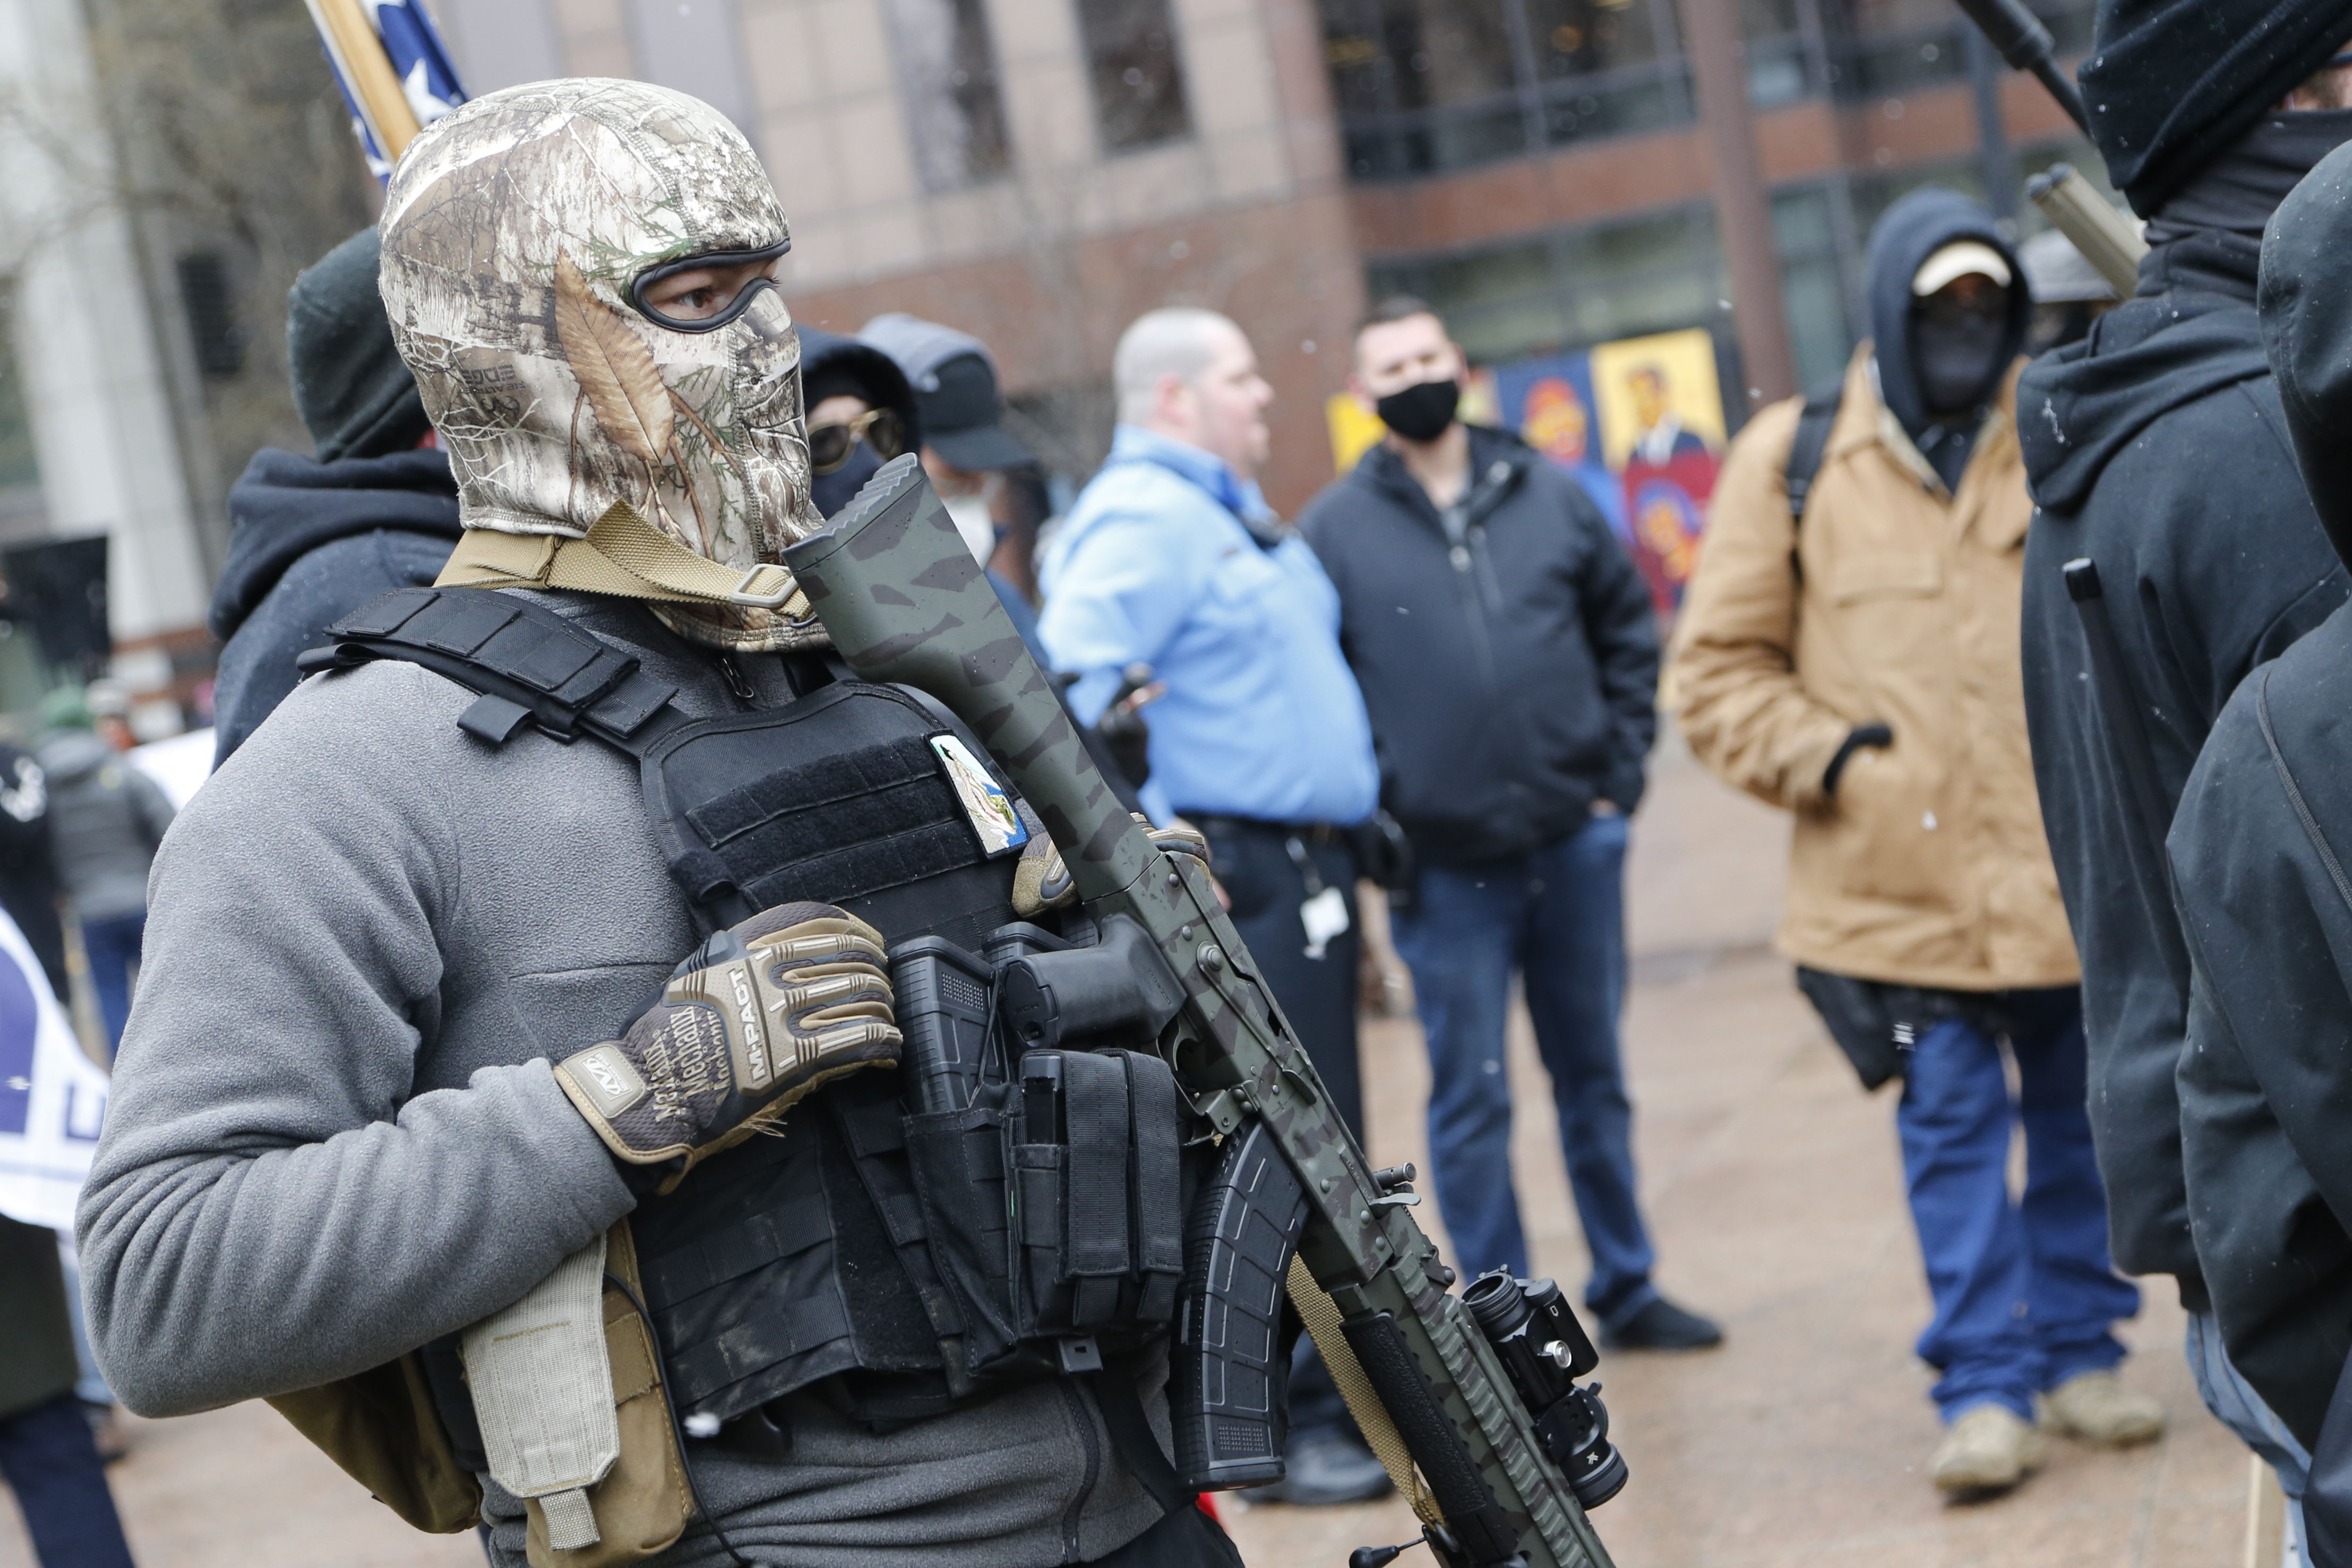 Armed protesters start to arrive at newly fortified US statehouses ahead of Biden's inauguration